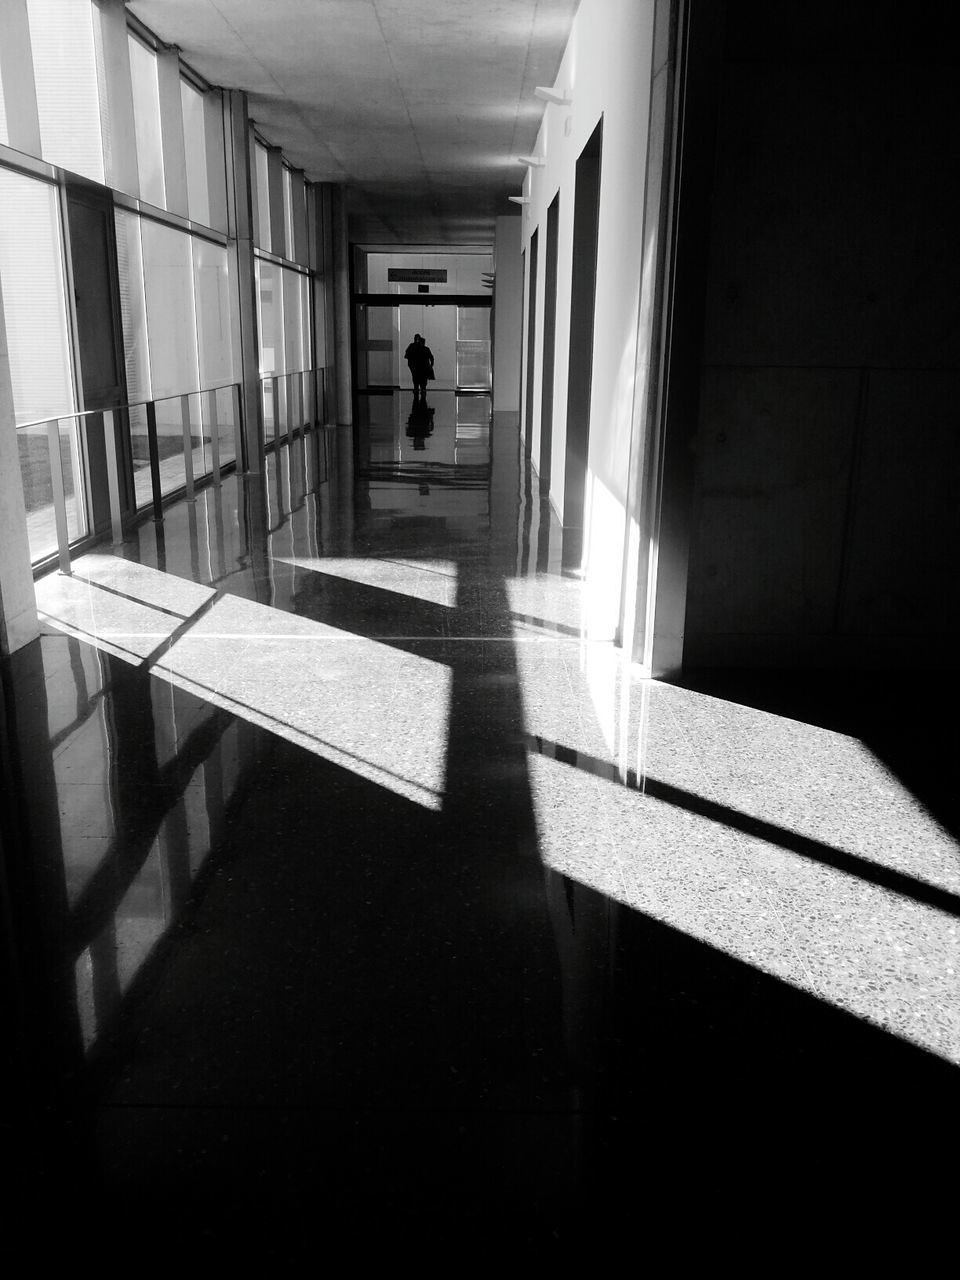 one person, shadow, walking, real people, indoors, full length, sunlight, architecture, men, built structure, corridor, day, one man only, people